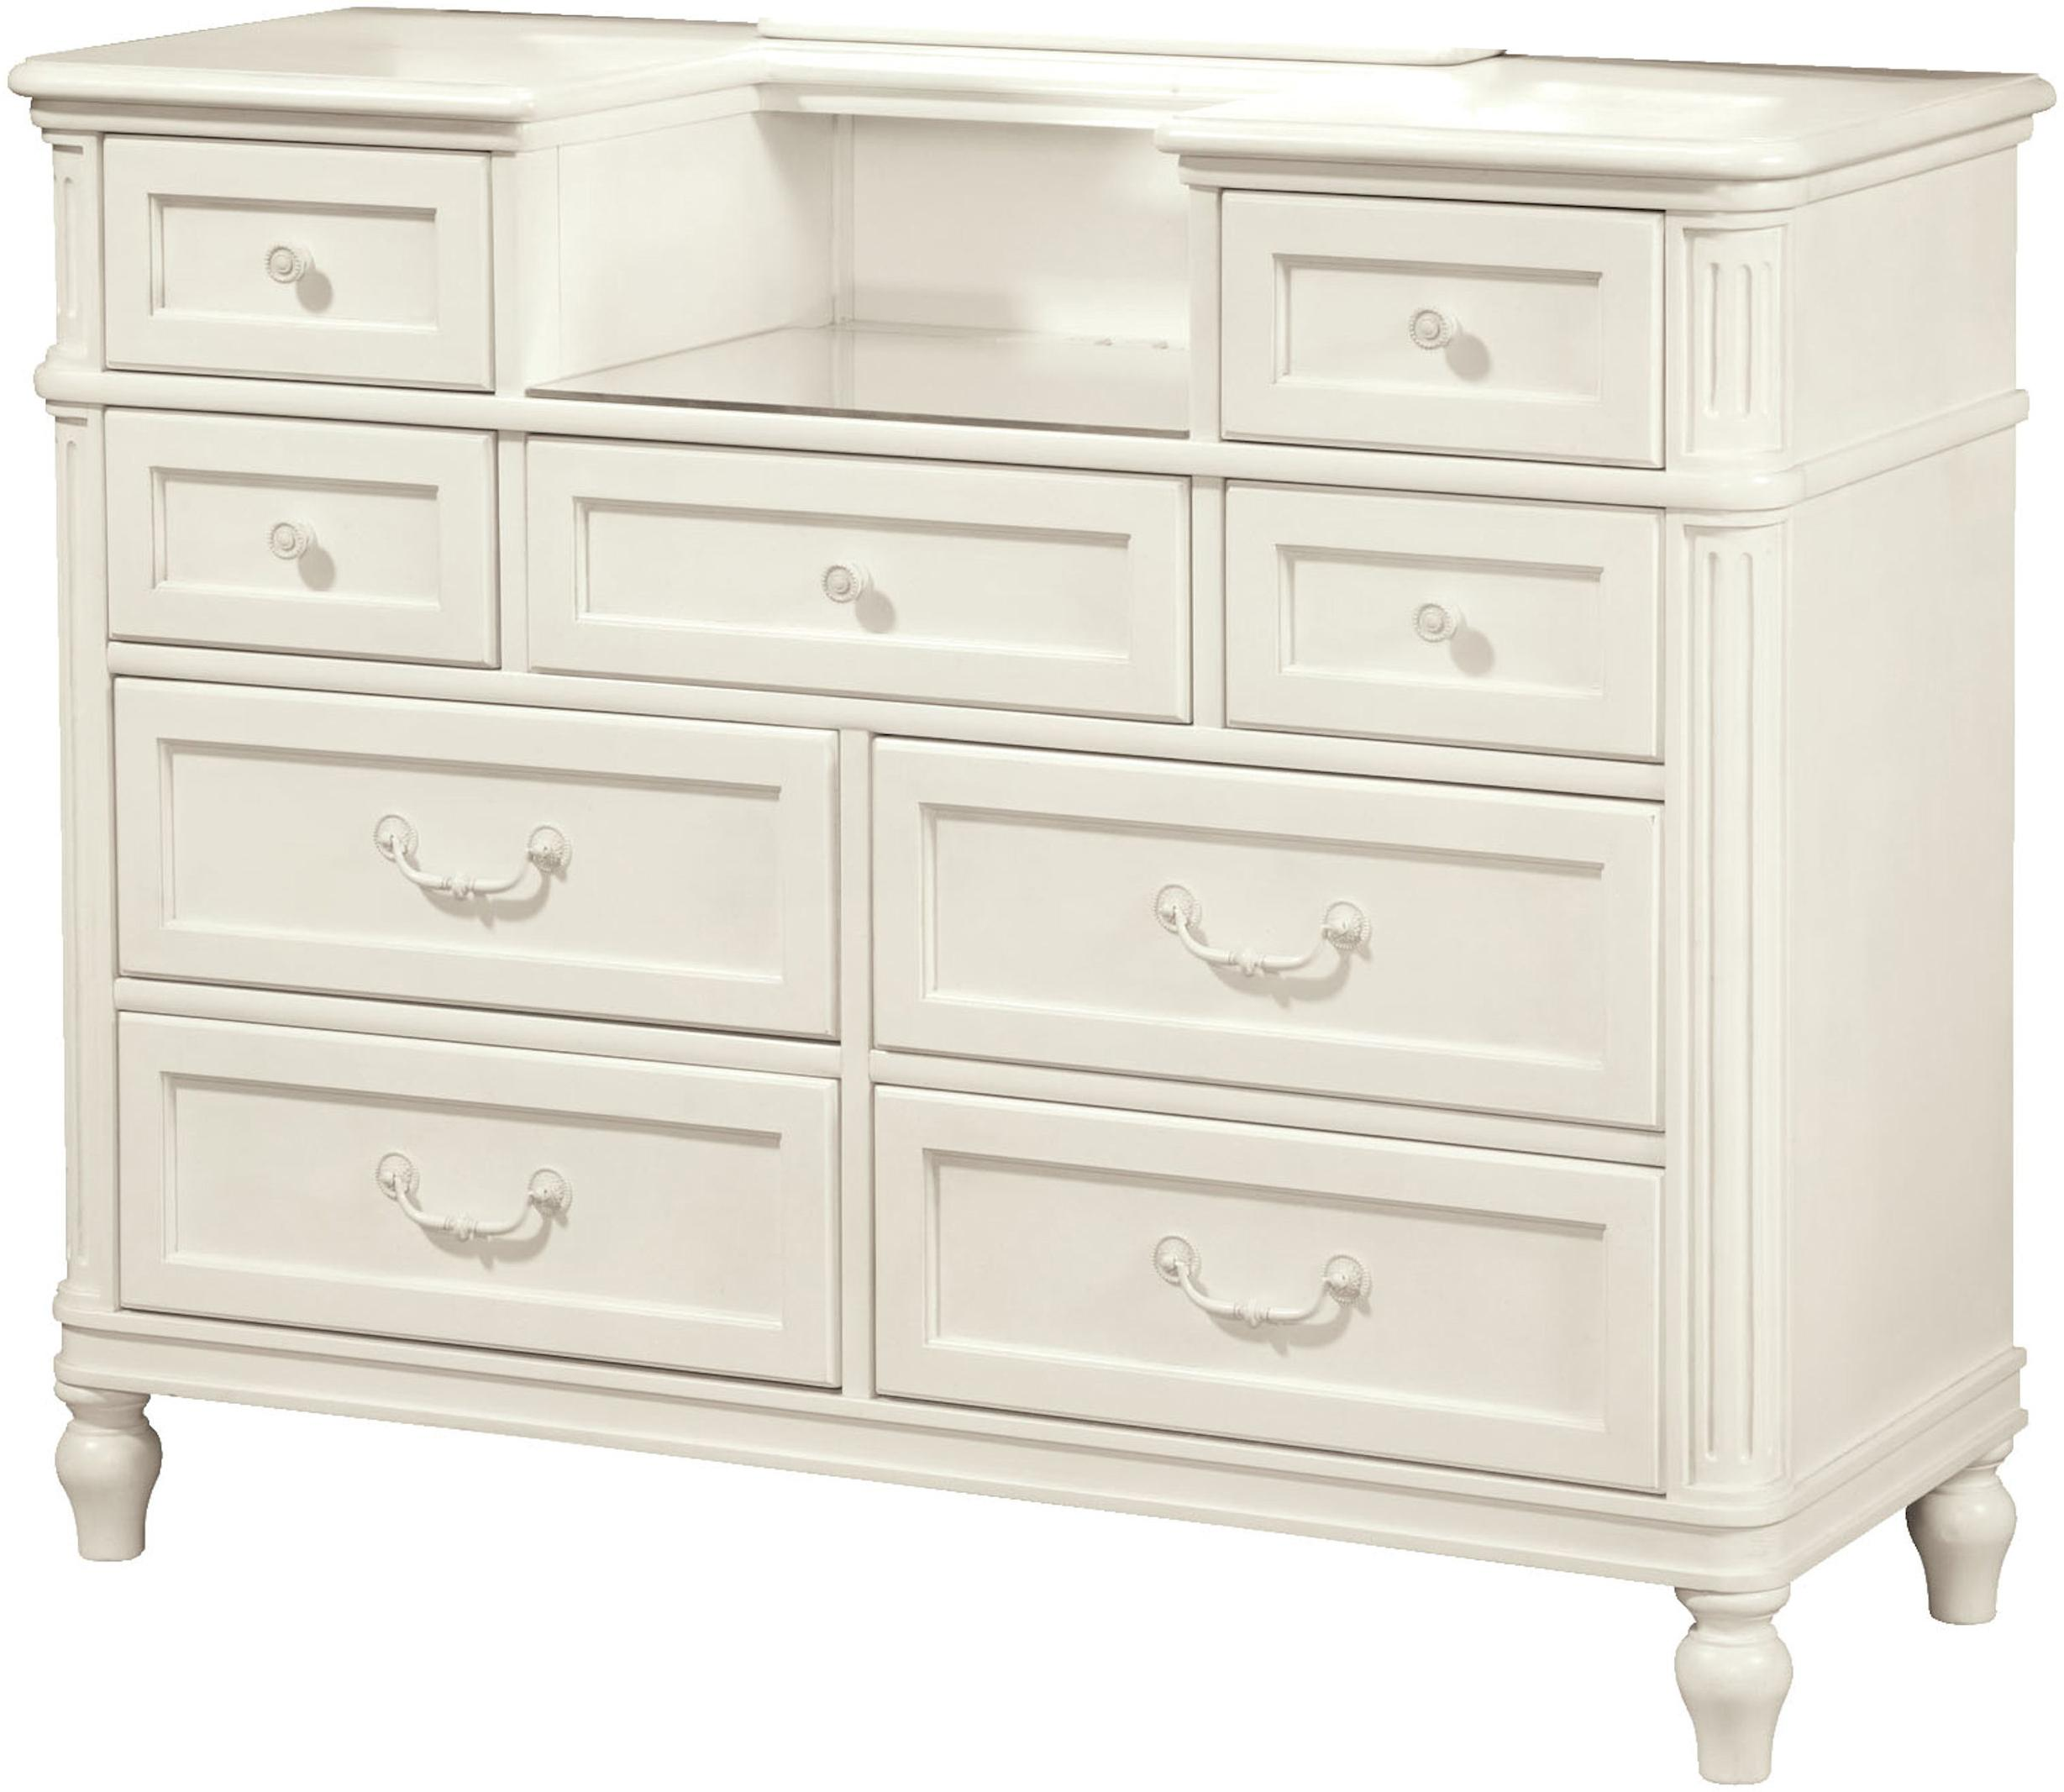 Morris Home Furnishings Greenville Greenville 9 Drawer Chest - Item Number: 136A004